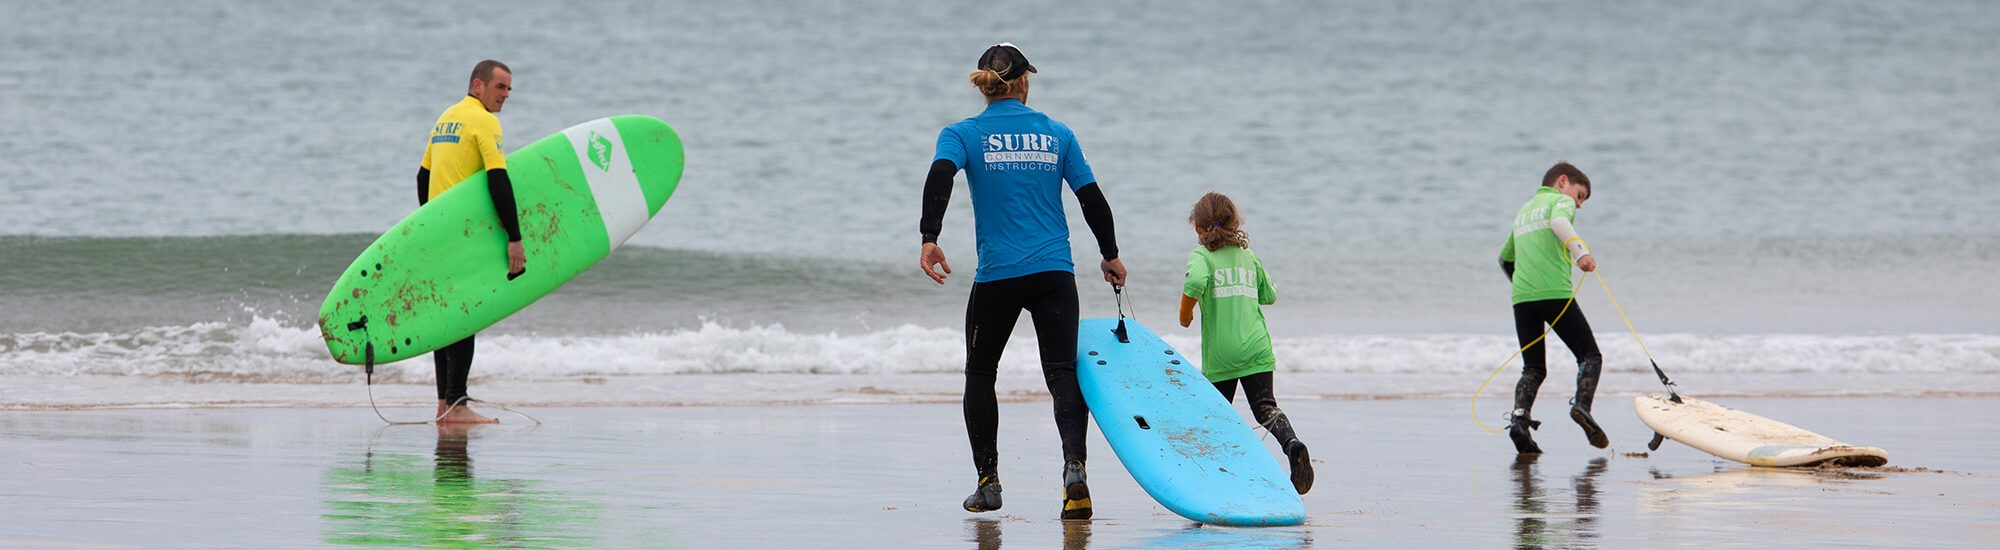 Surf Club Cornwall Surf Lessons by Andy Holter